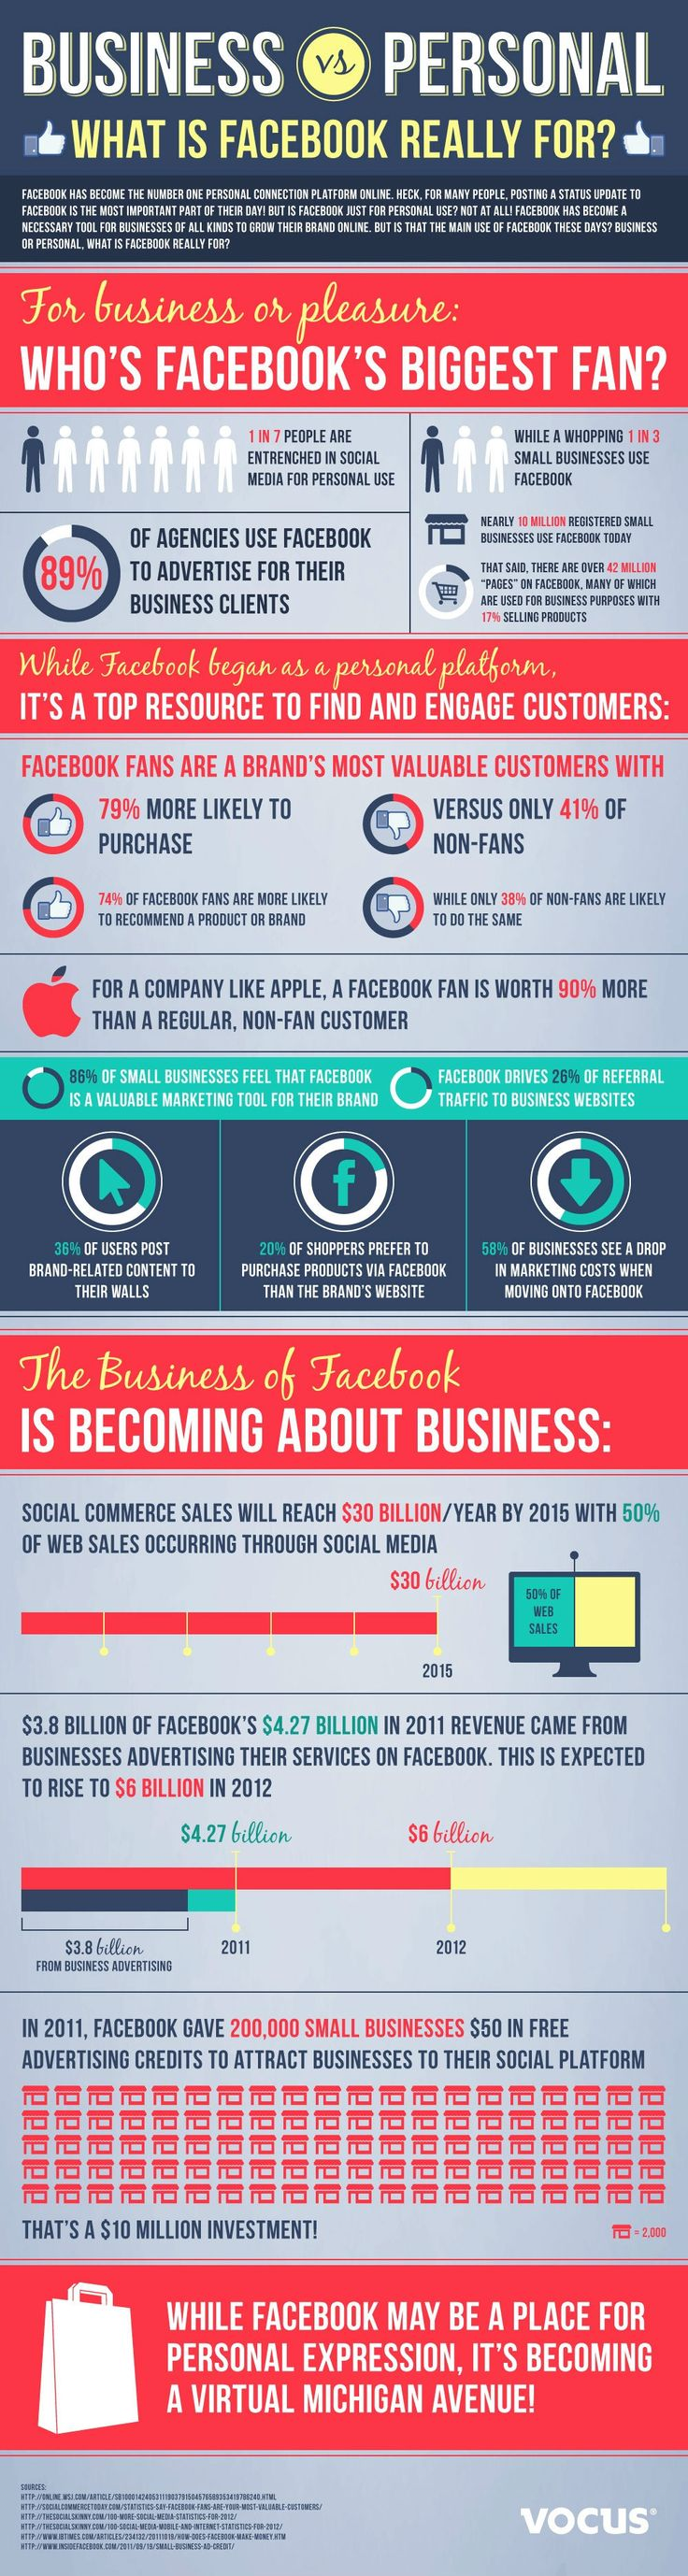 Business vs Personal: What Is Facebook Really For?